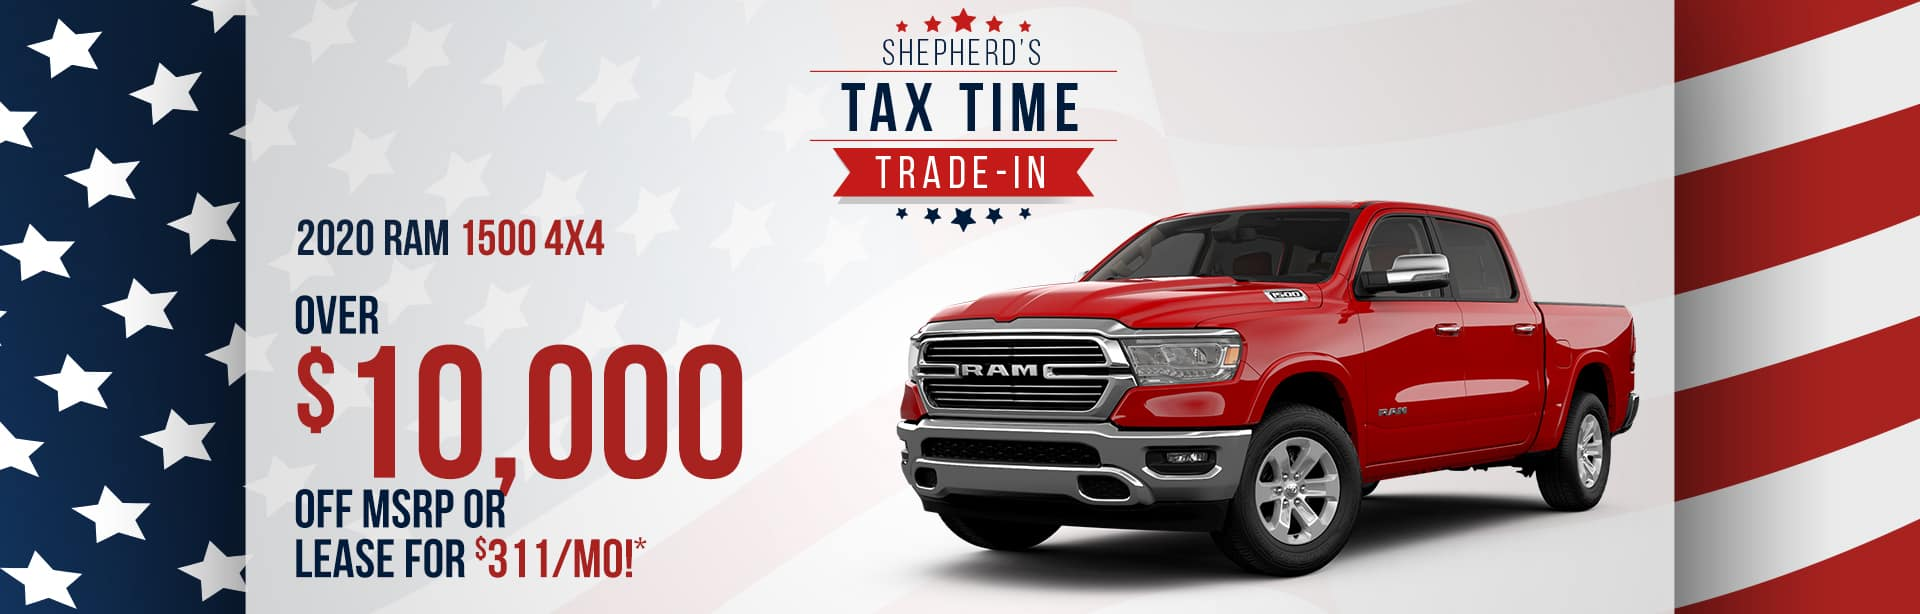 Rebate Special on an All-New Ram 1500 Near Fort Wayne, Indiana